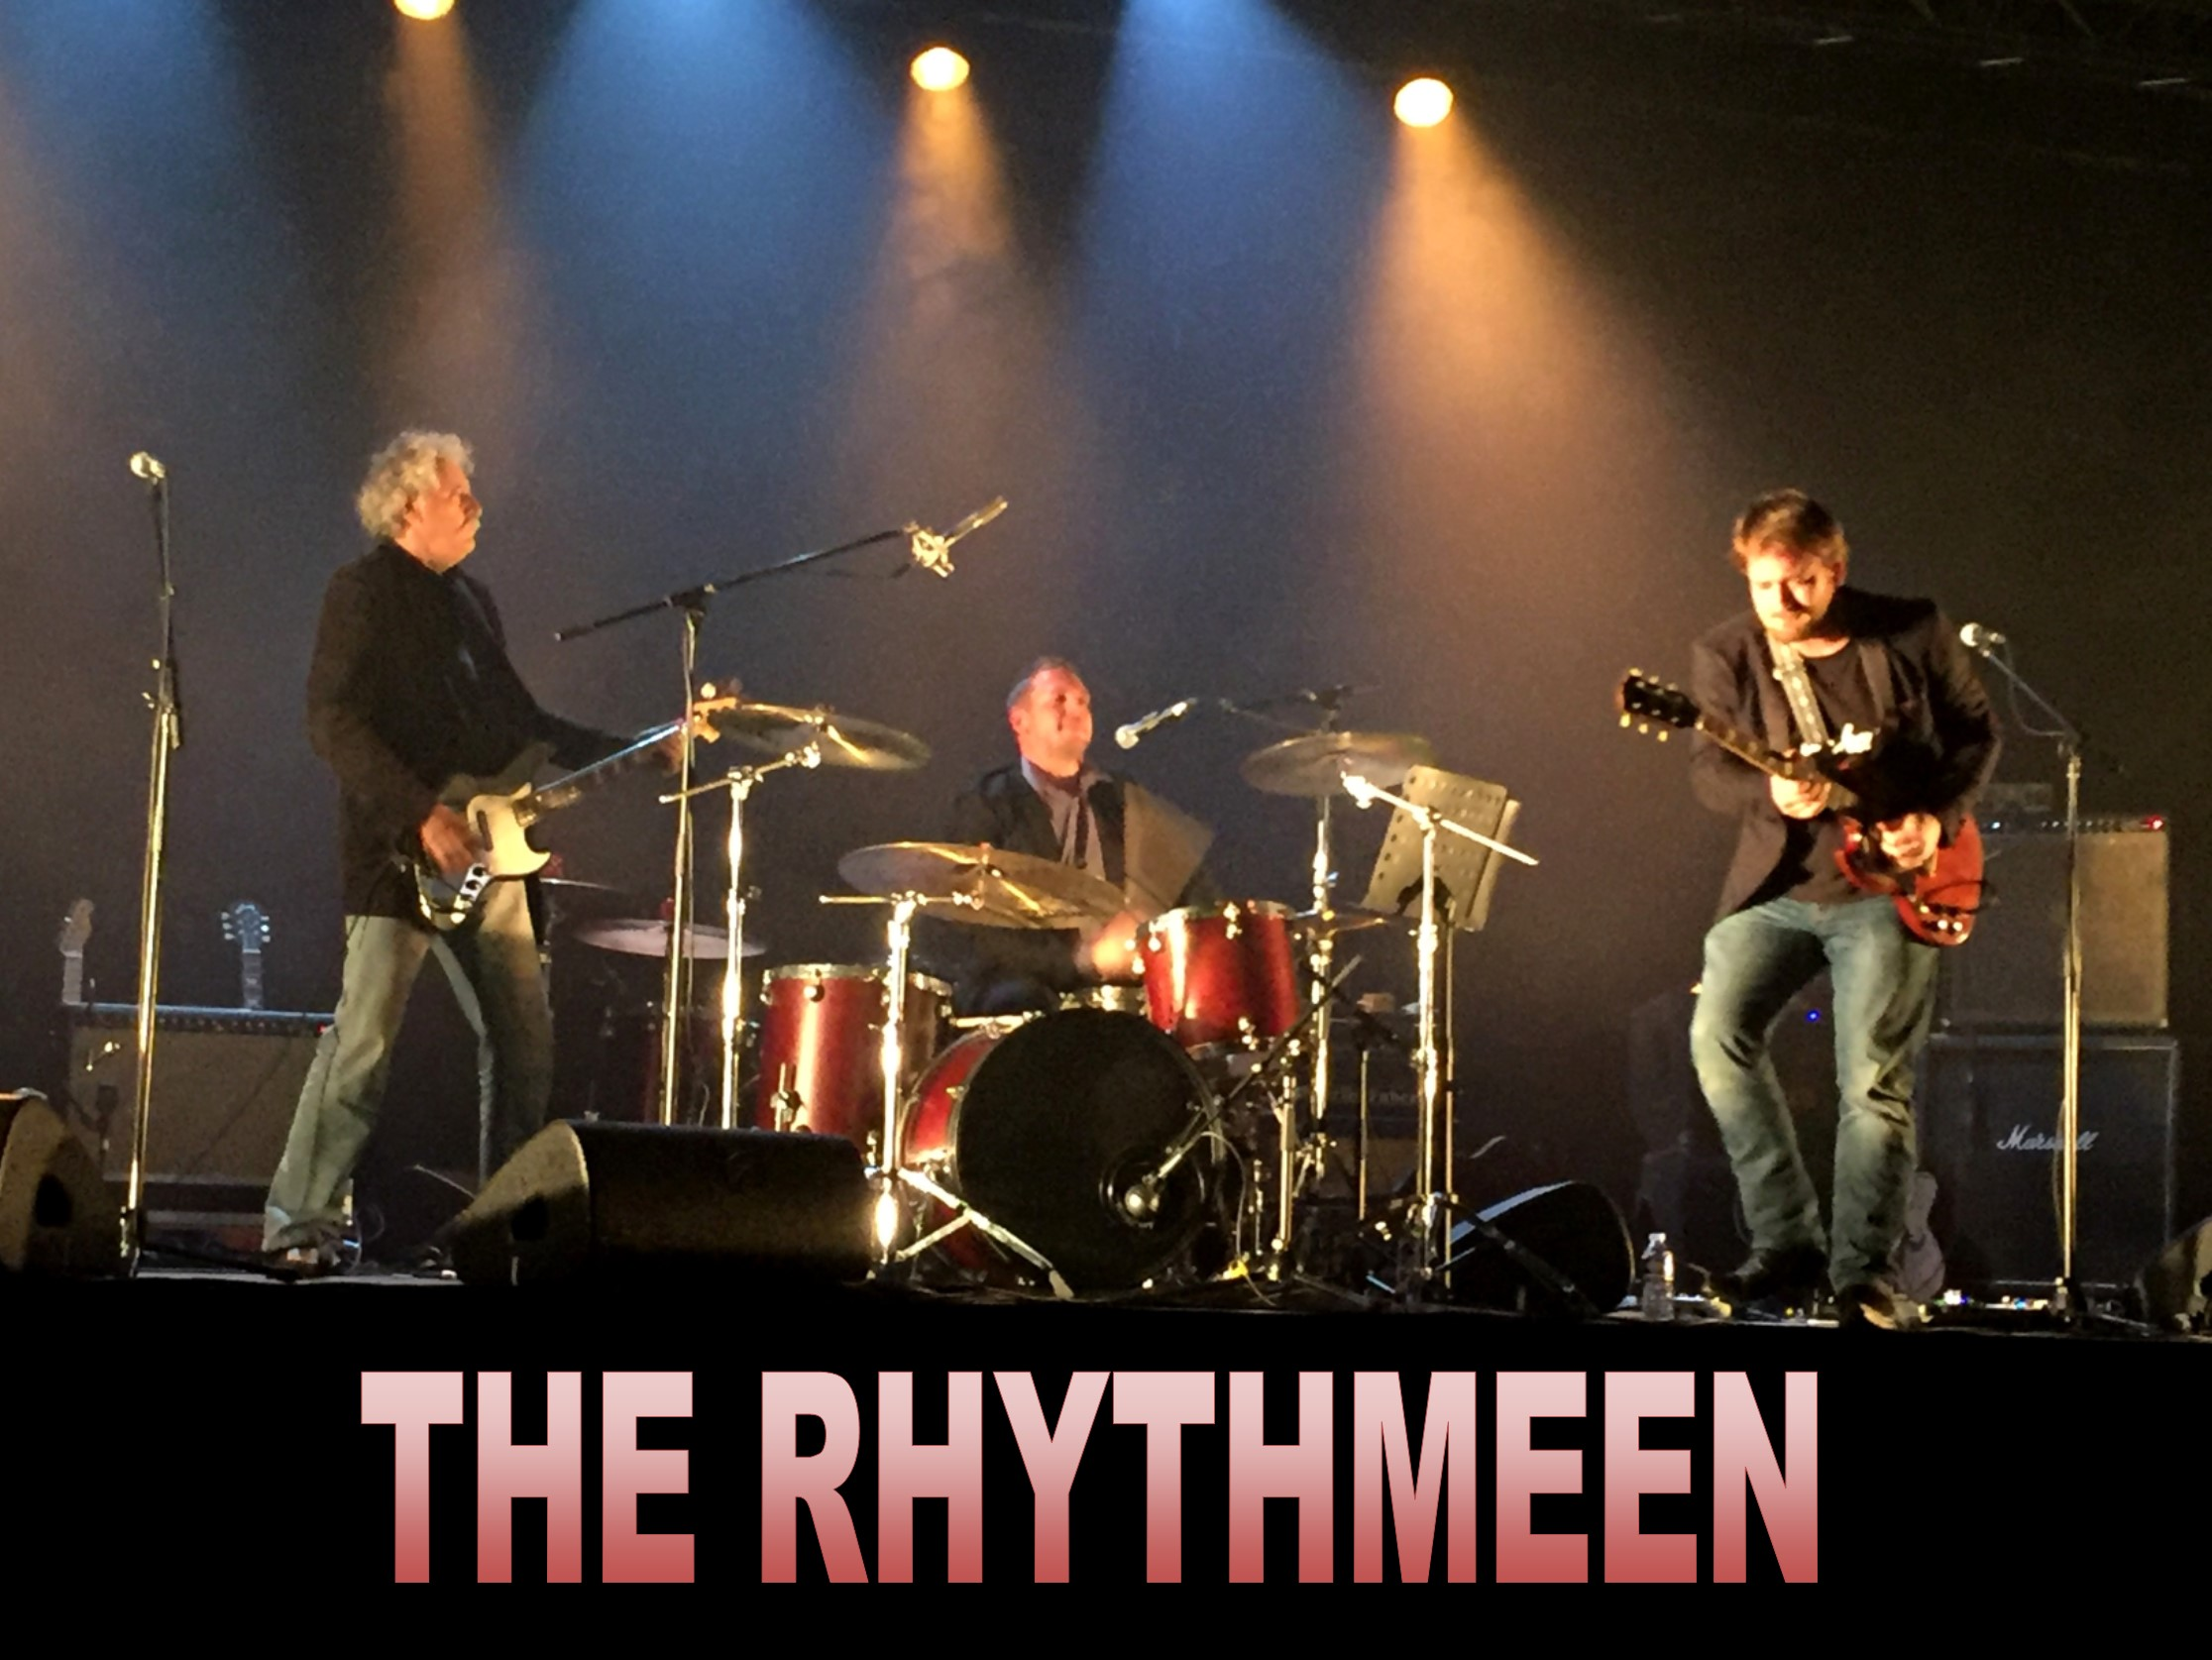 THE RYHTHMEEN